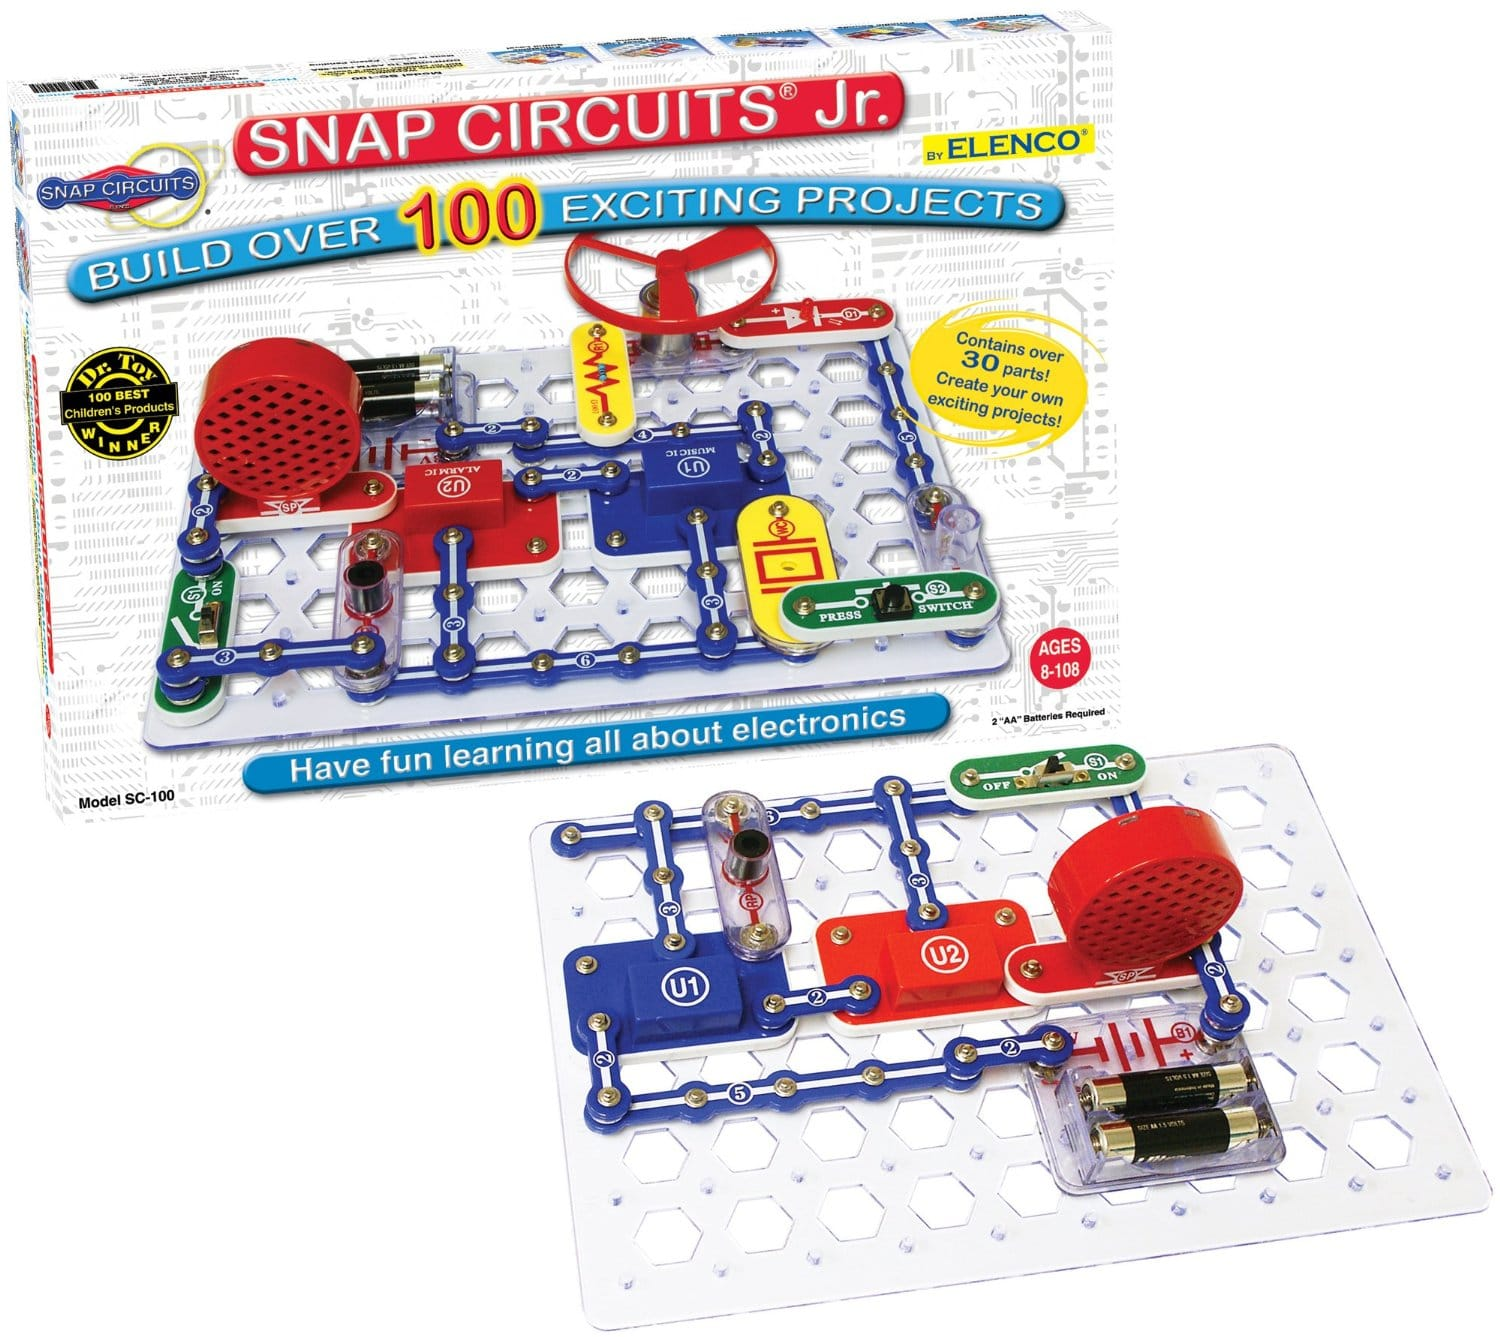 snap circuits gift for 10 year old girl